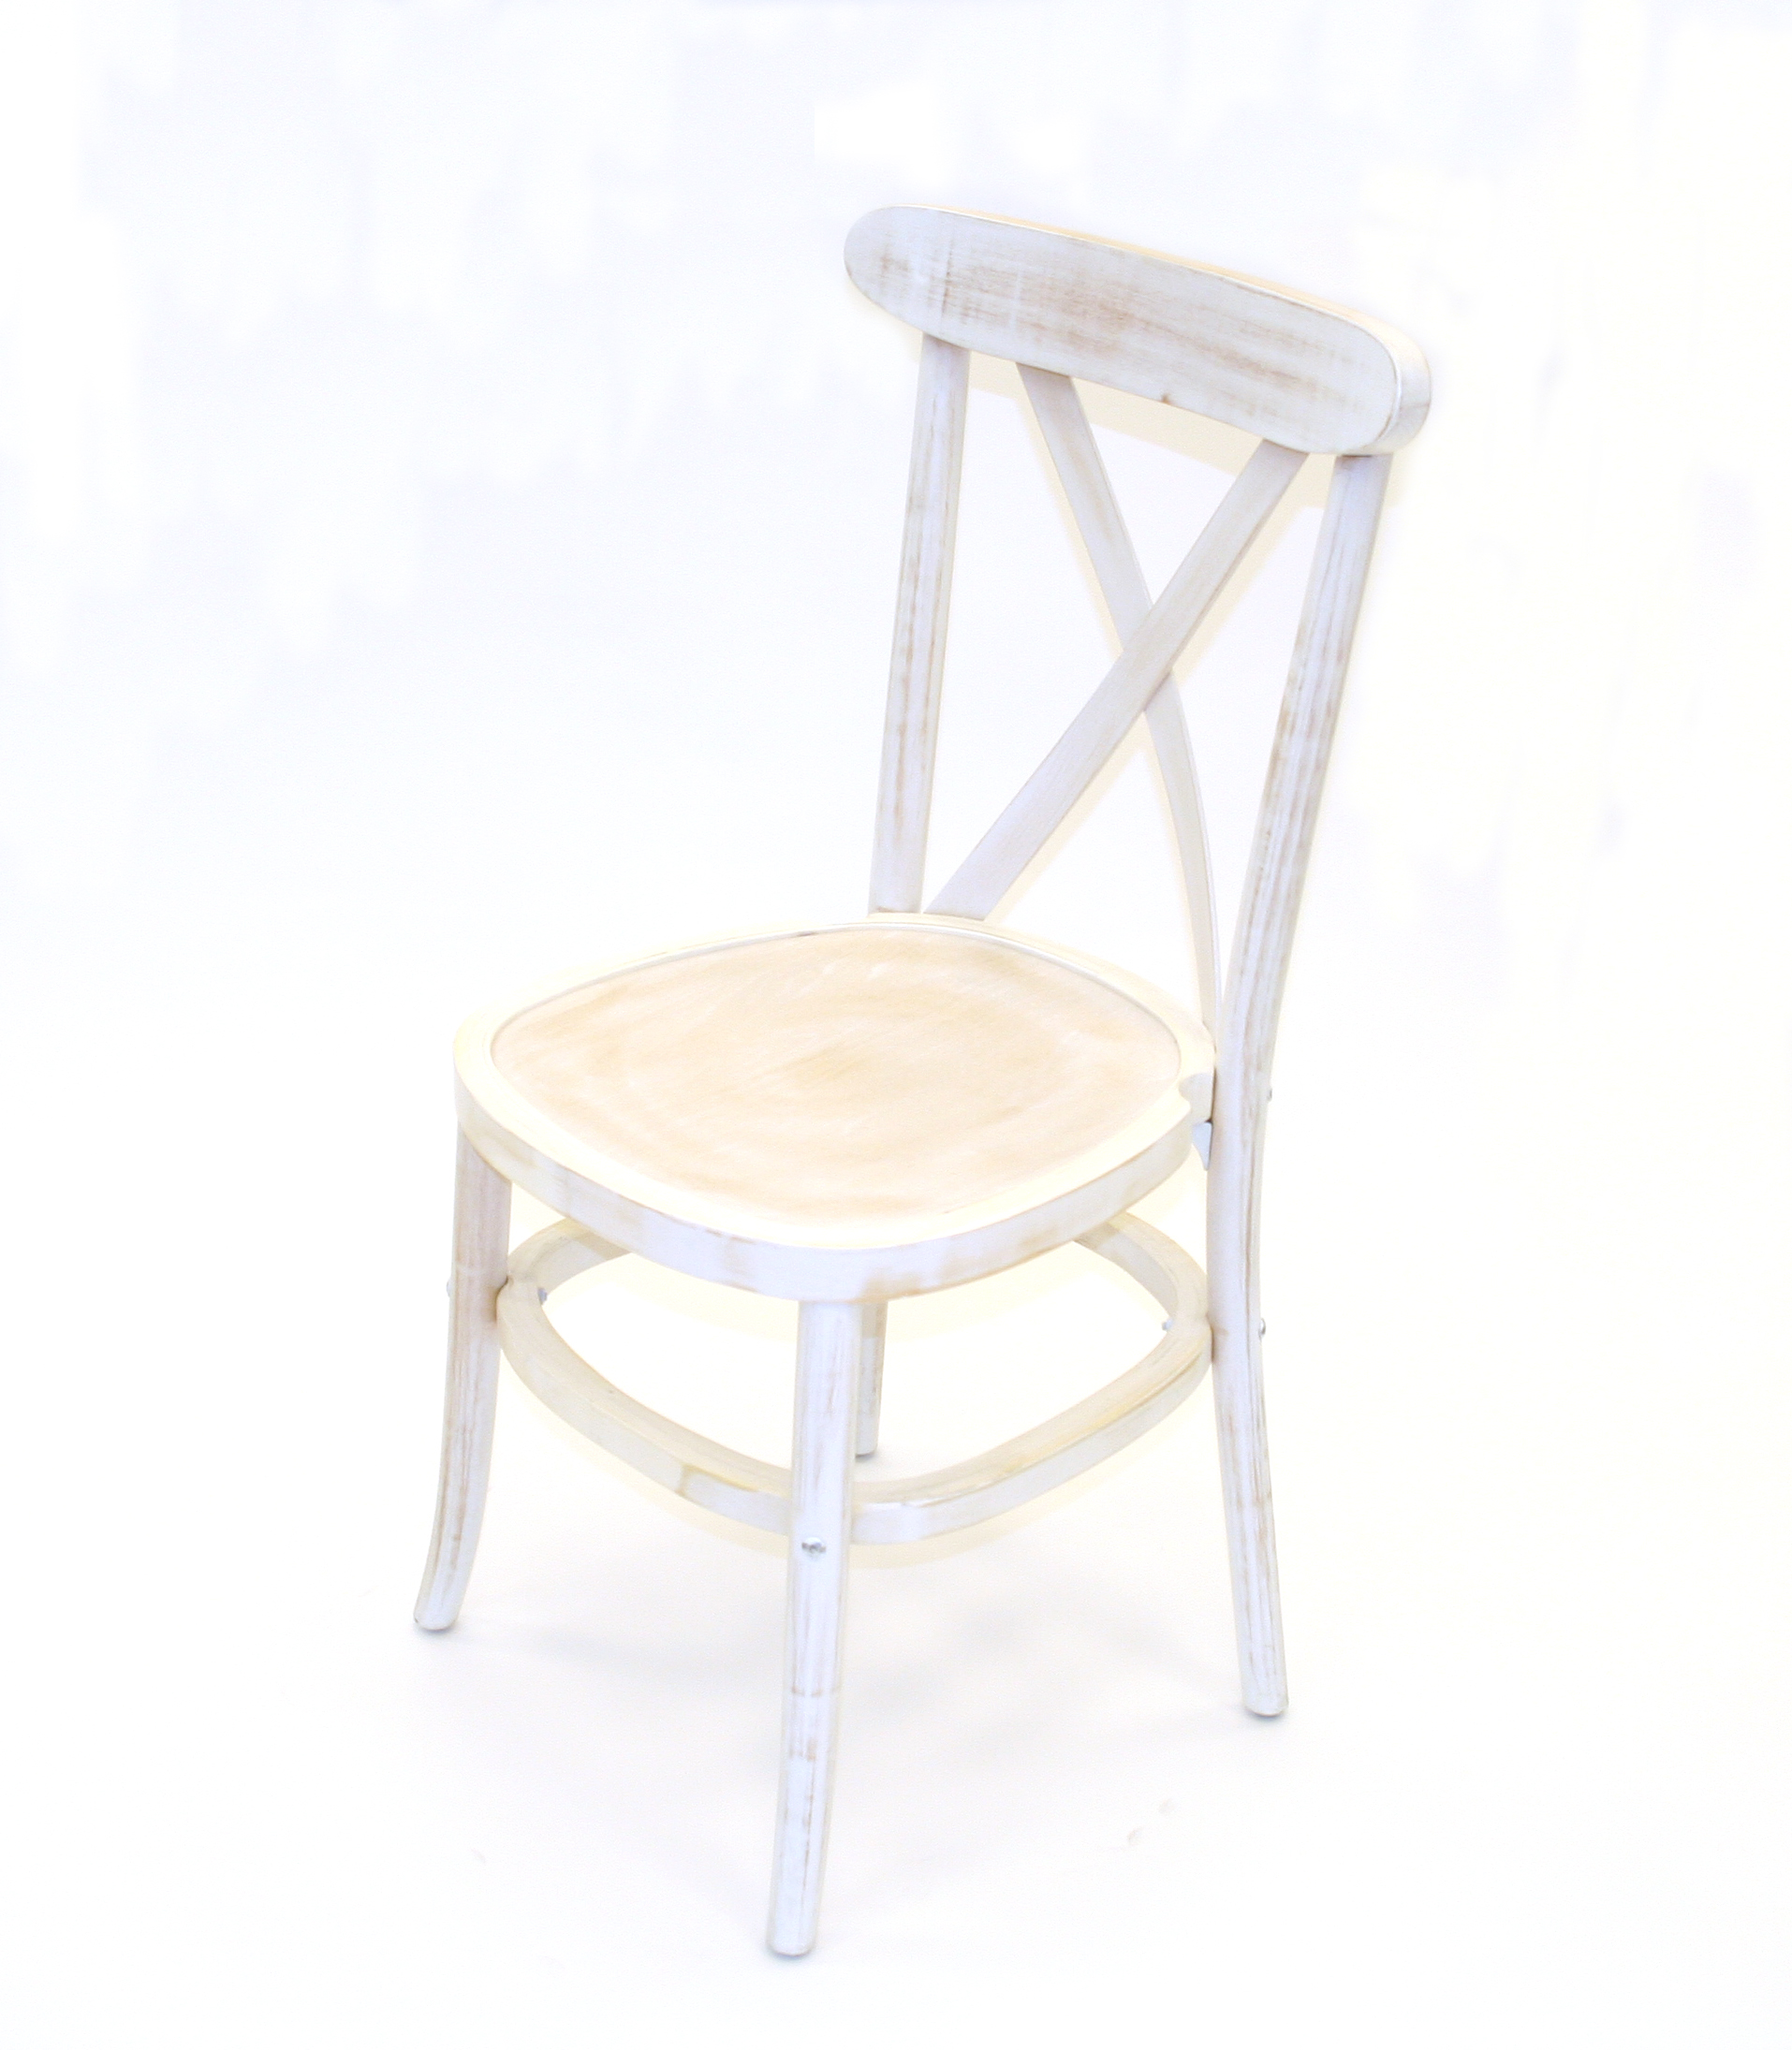 Limewash crossback chairs weddings functions events be event hire